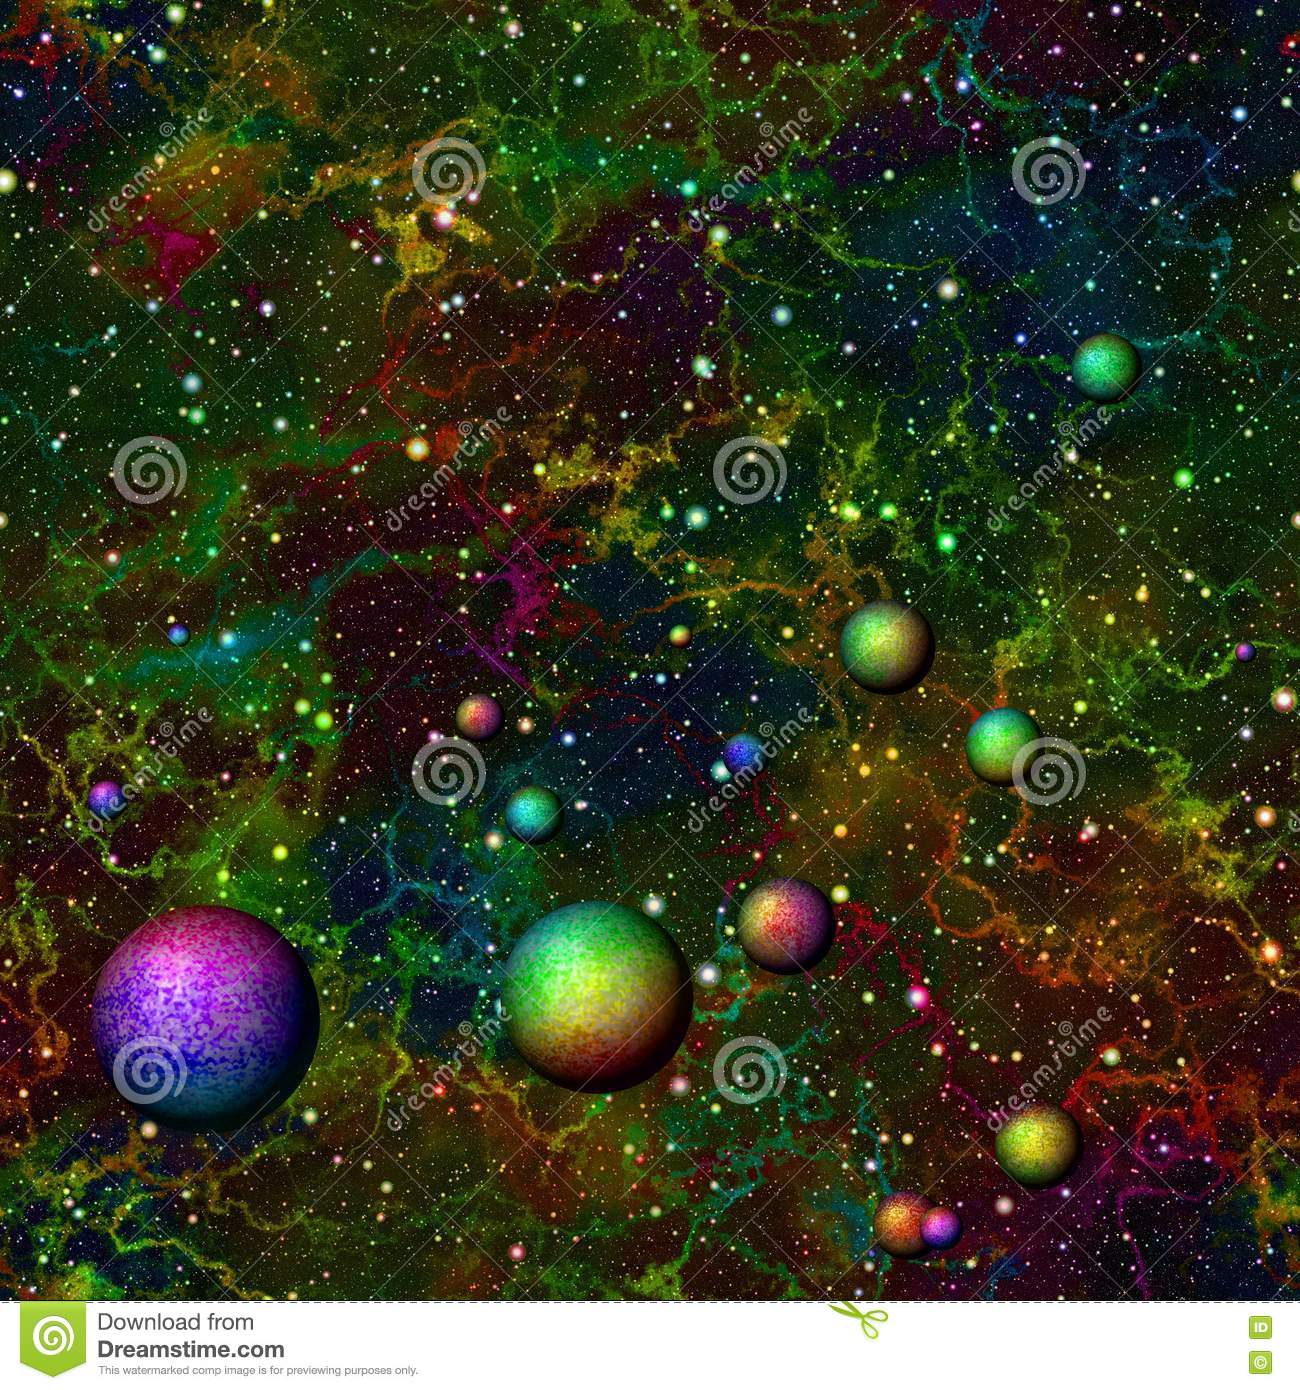 starry sky with planets - photo #47